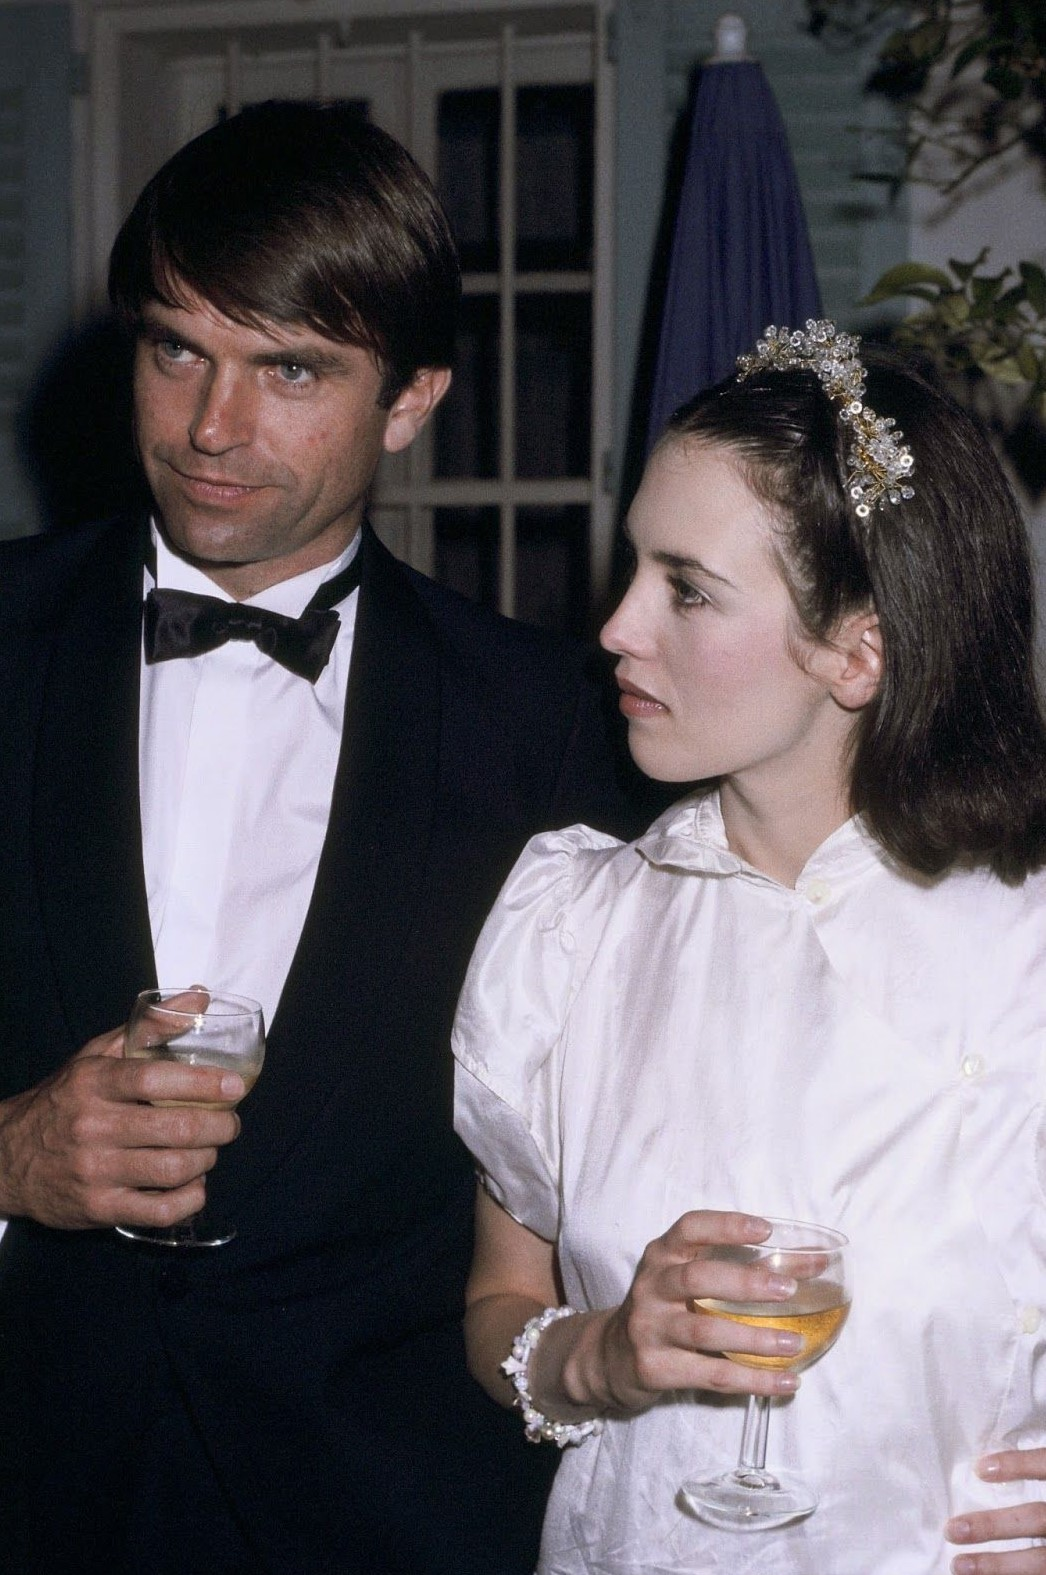 Isabelle Adjani and Sam Neill at an event for Possession (1981)